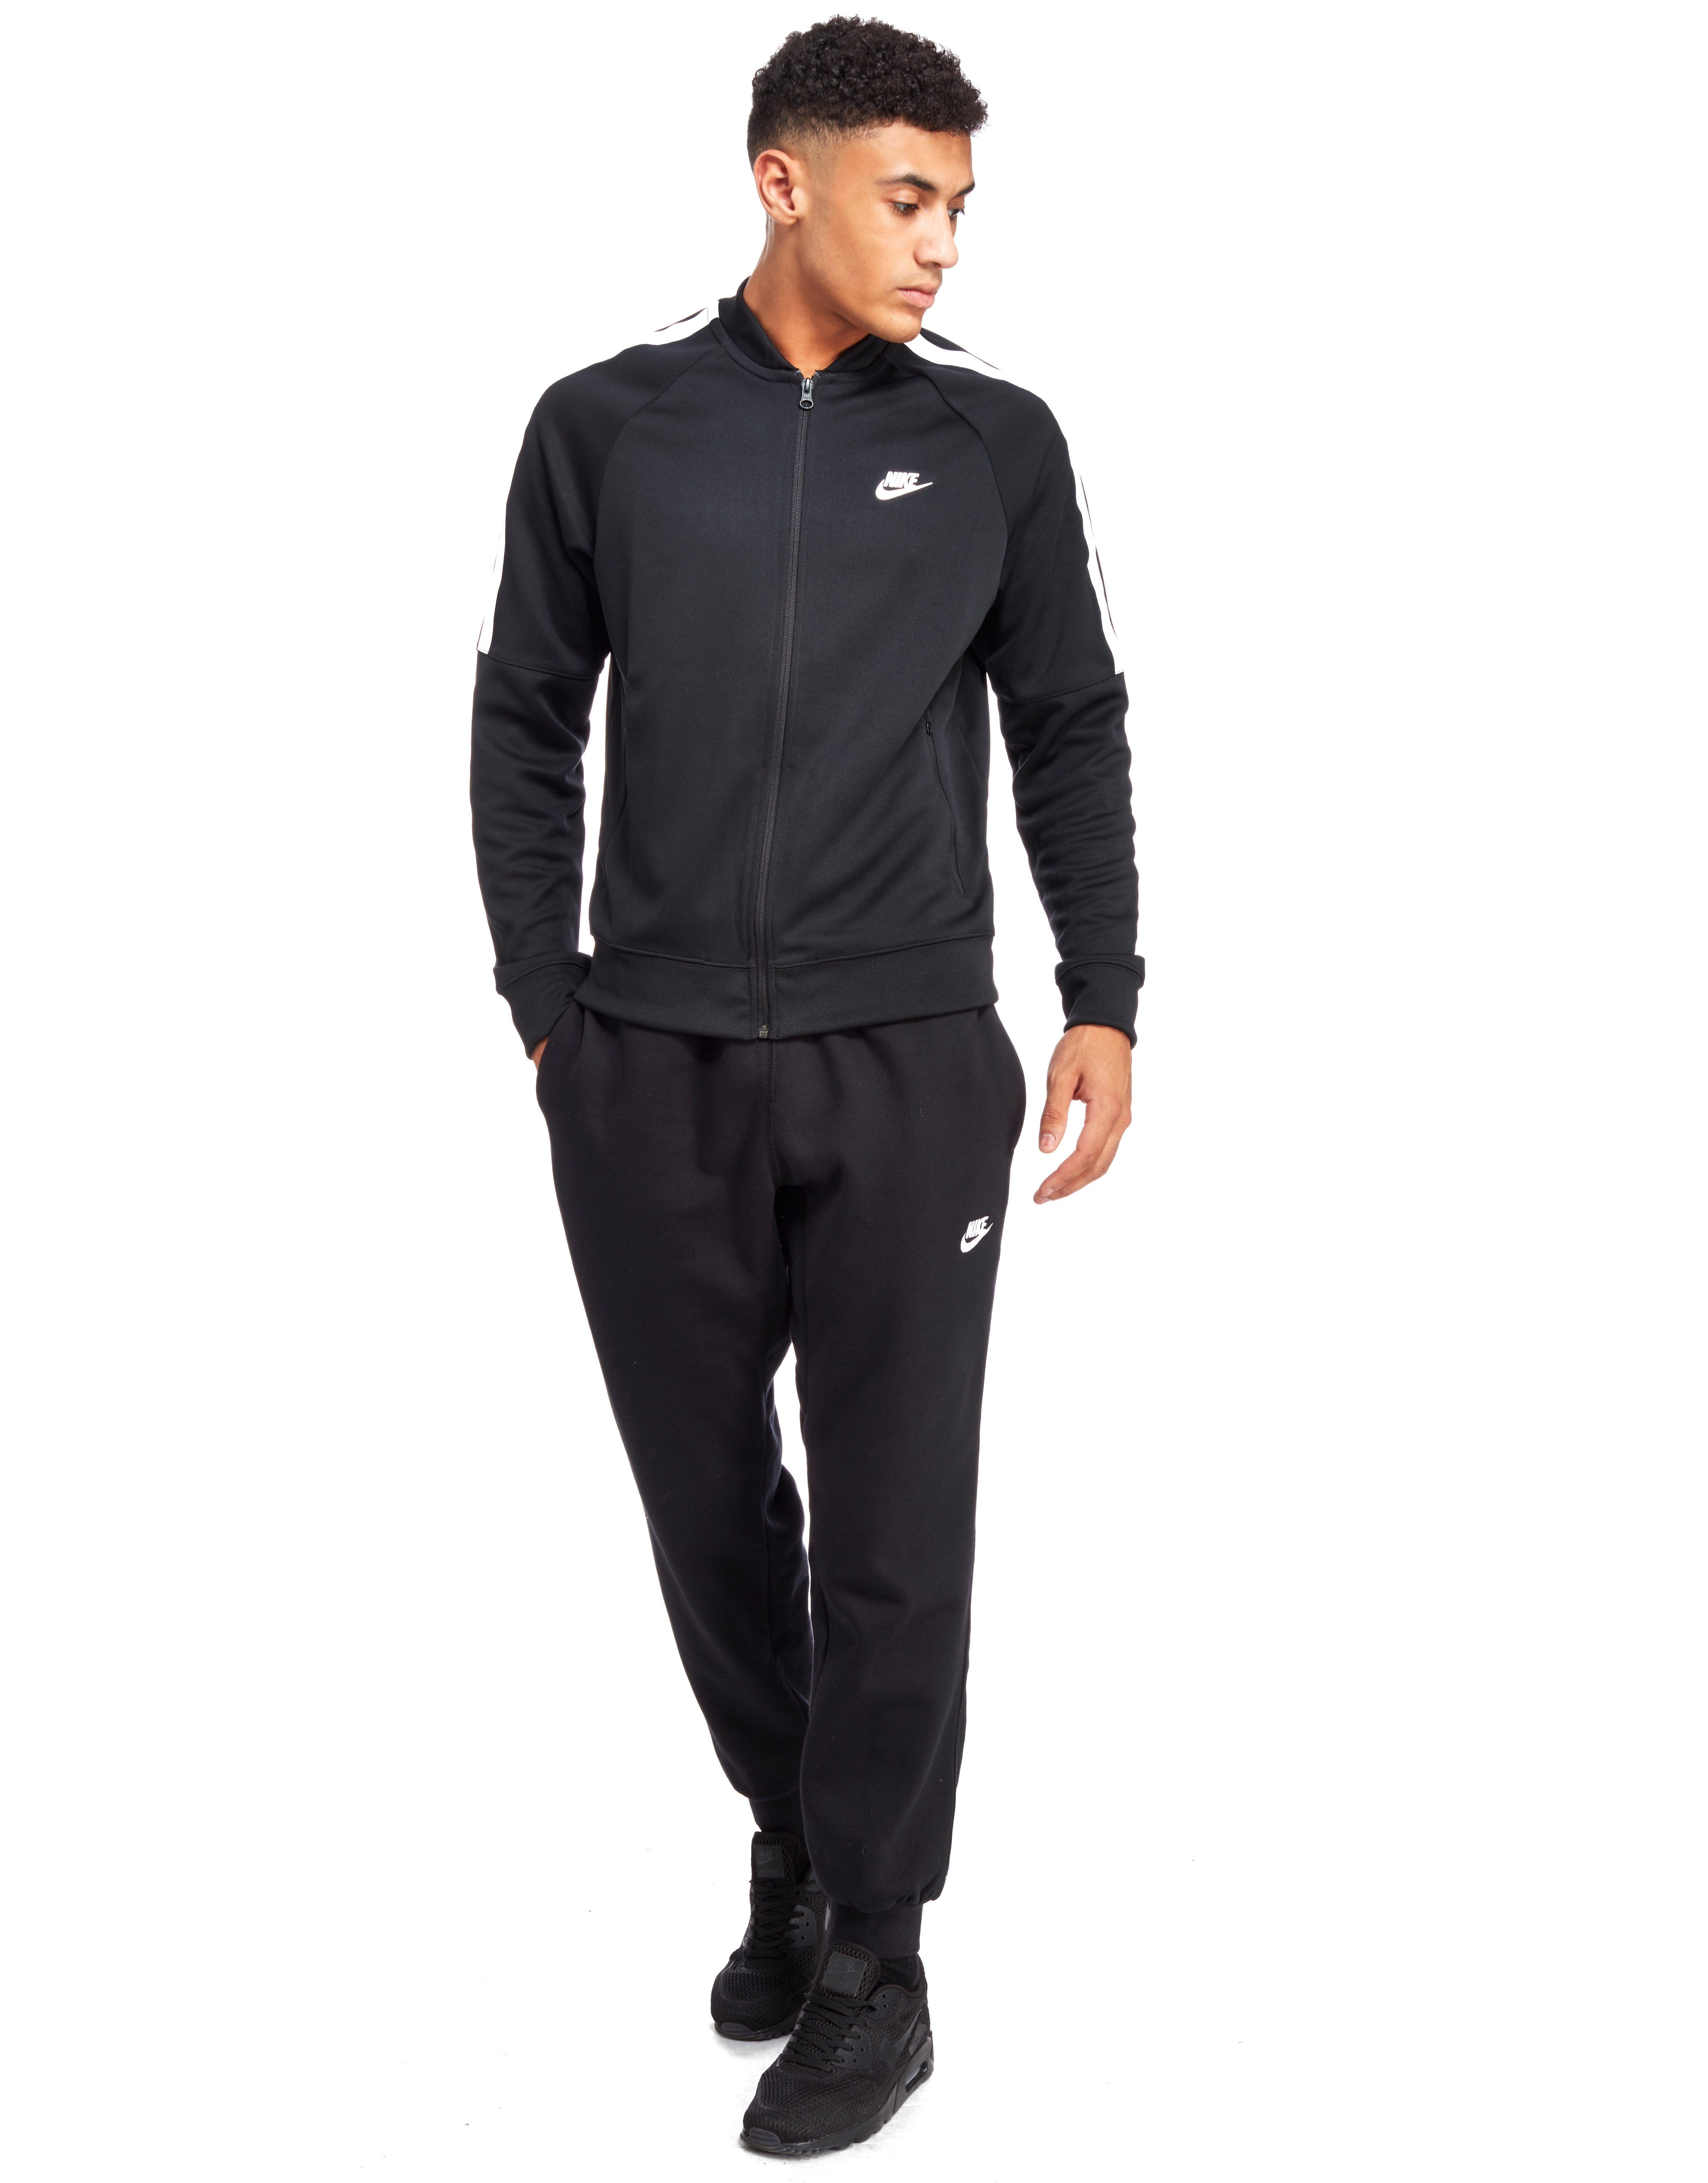 Nike Tribute B-ball Poly Track Top in Black for Men - Lyst ddfc4243f